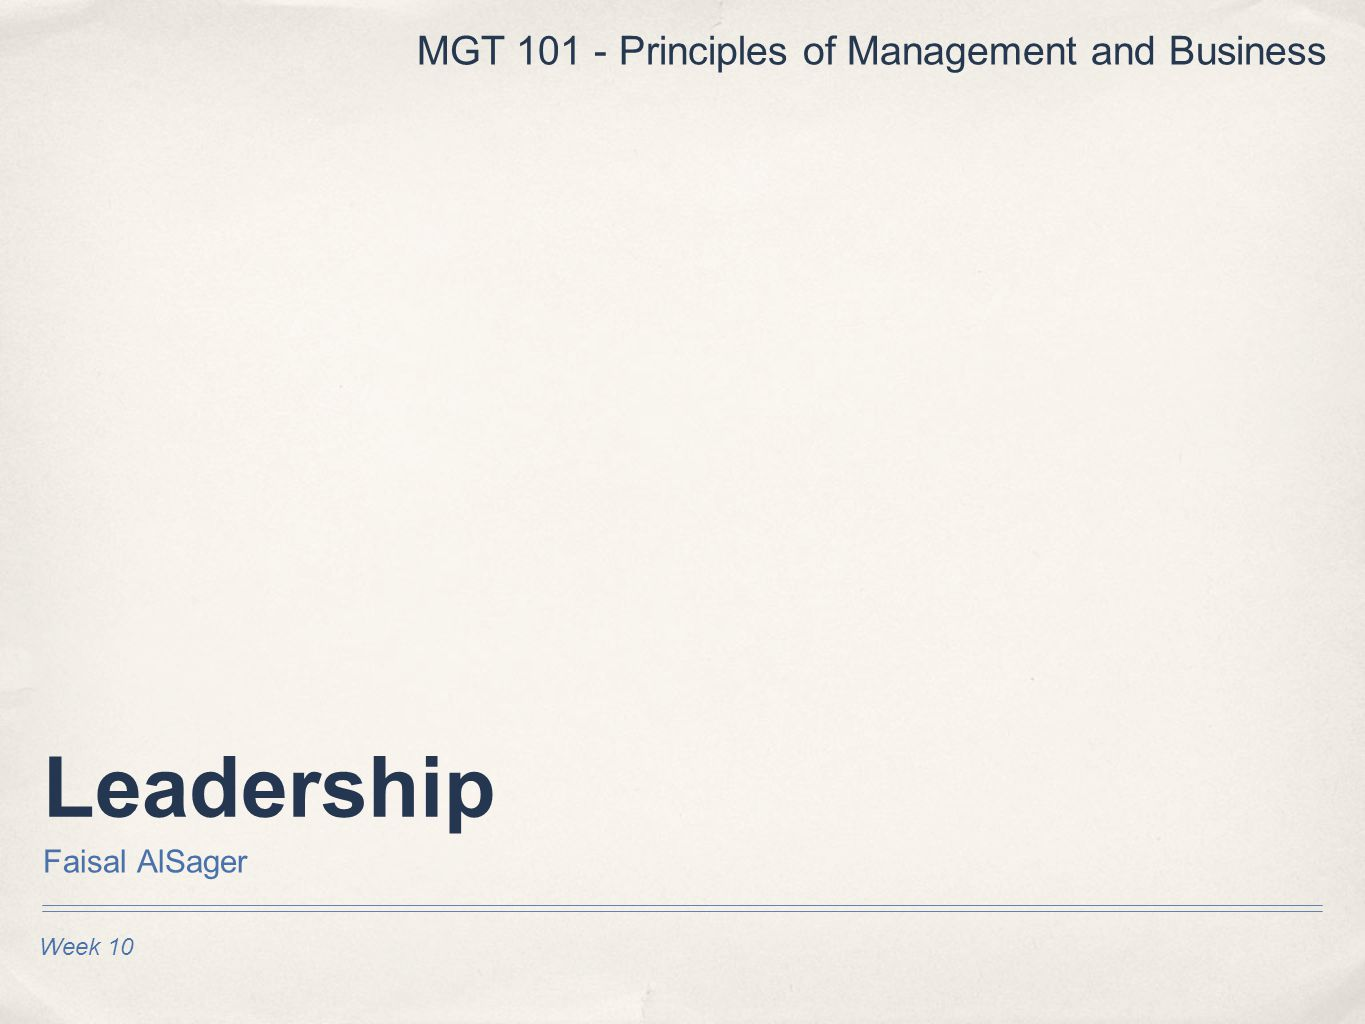 Leadership Faisal AlSager Week 10 MGT 101 - Principles of Management and Business